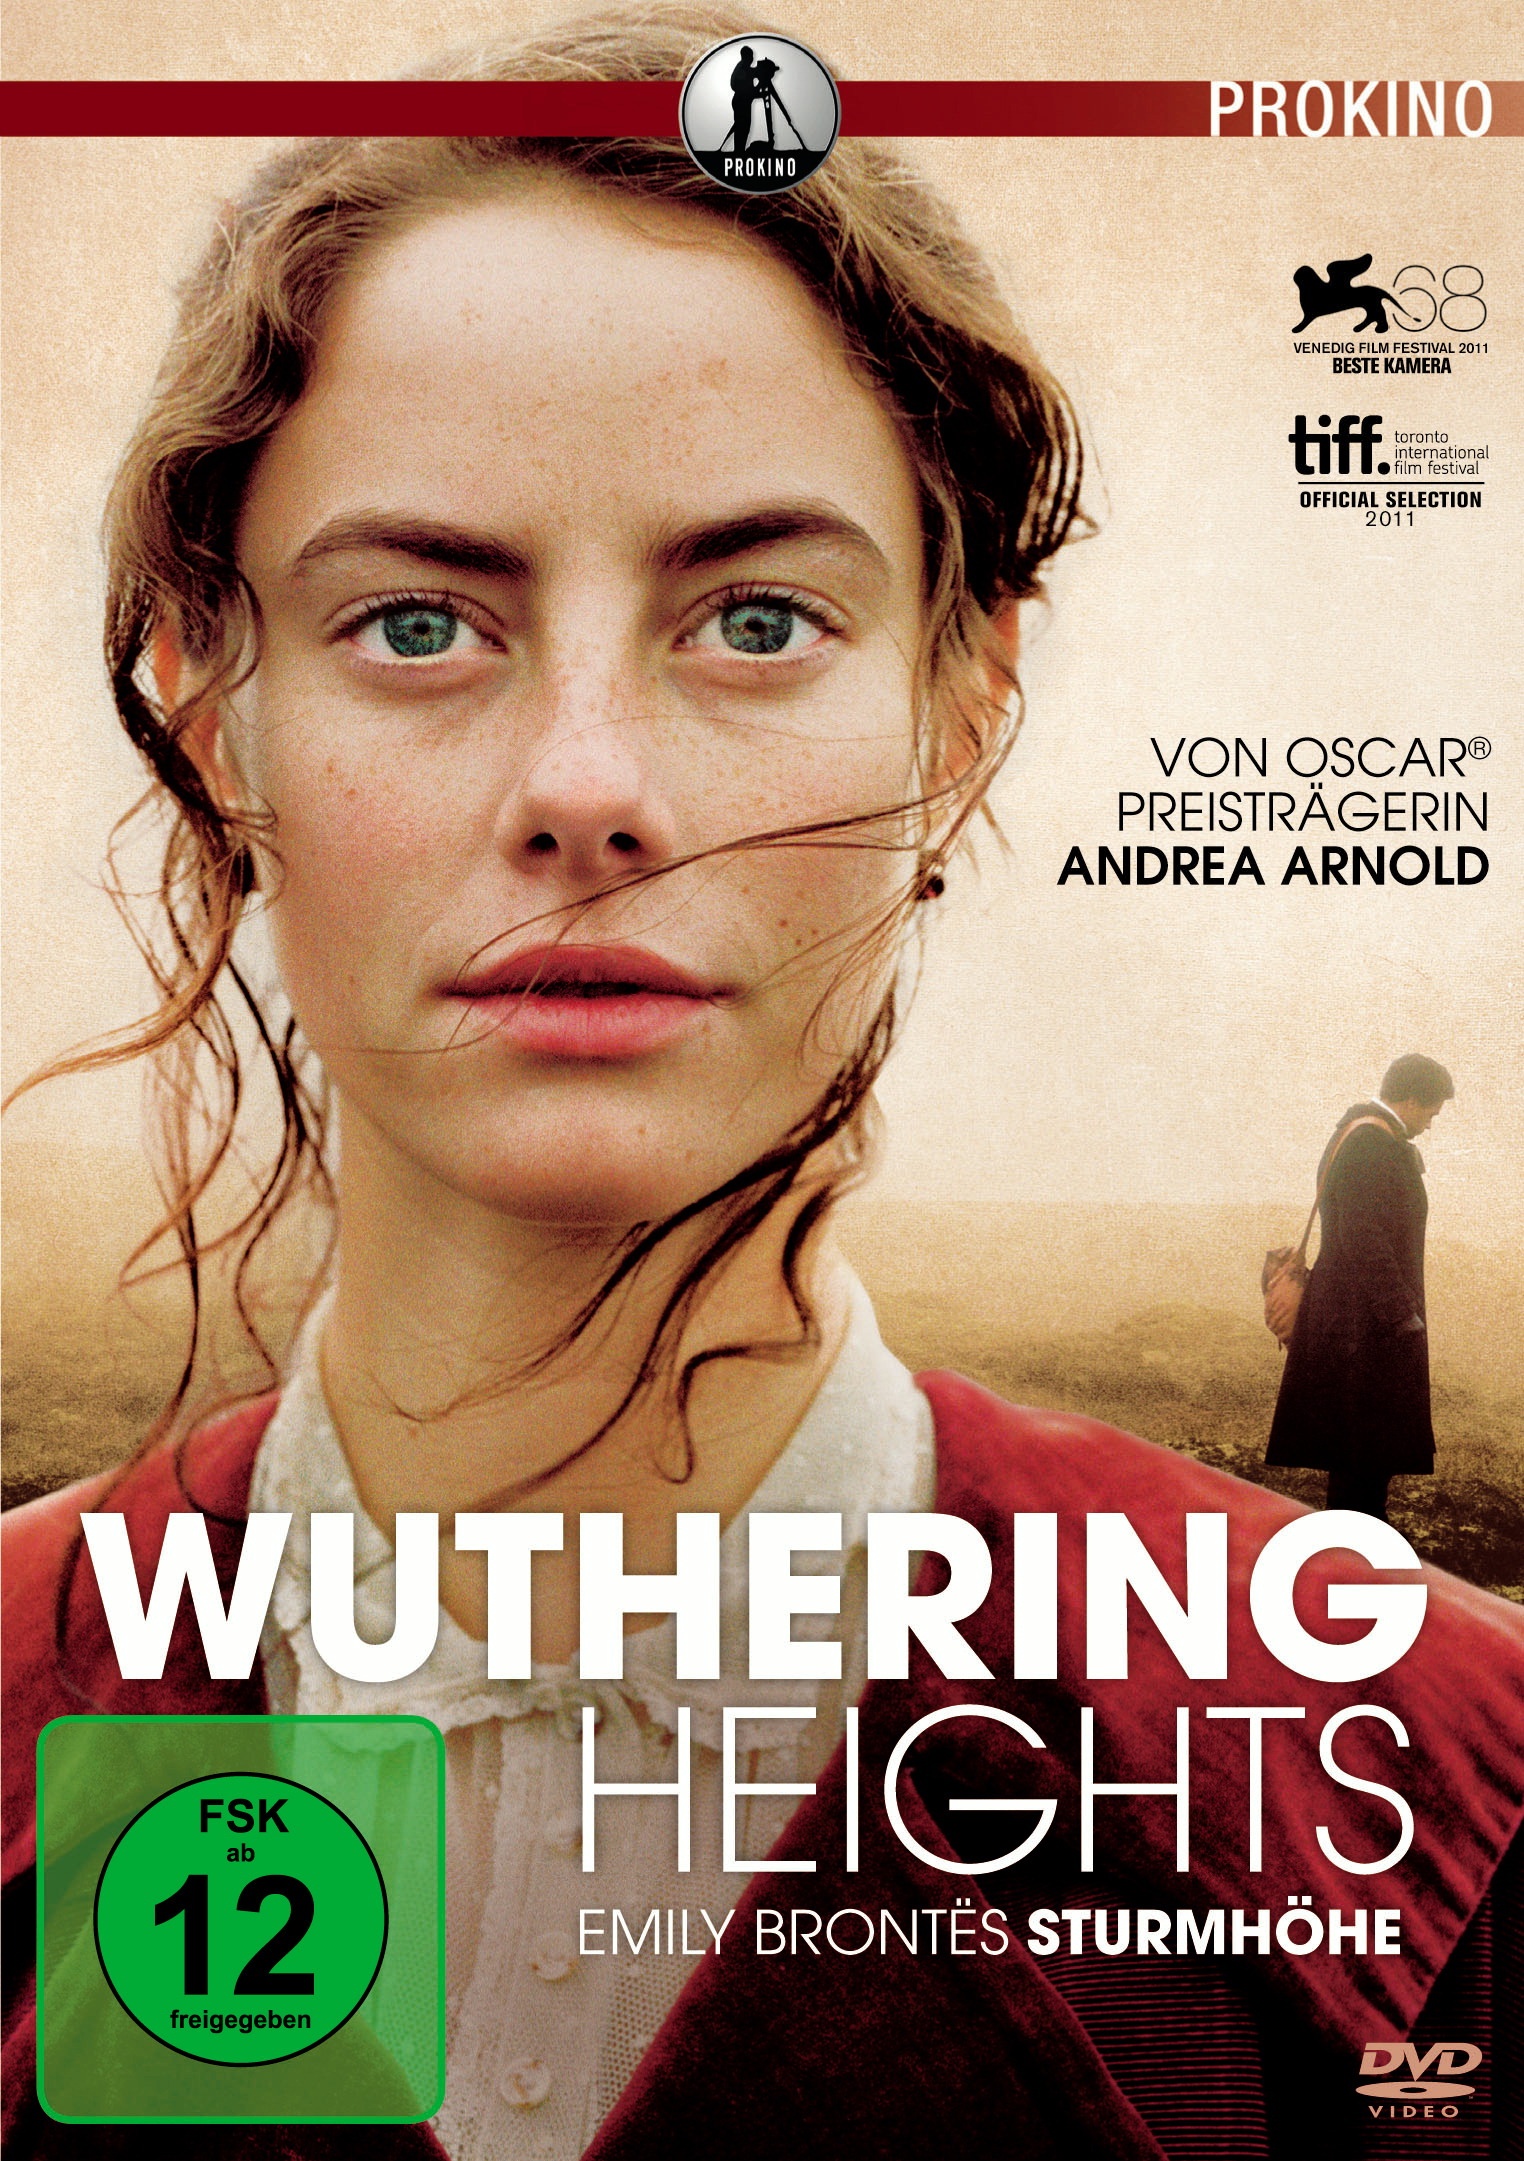 Wuthering Heights - Emily Brontës Sturmhöhe Poster